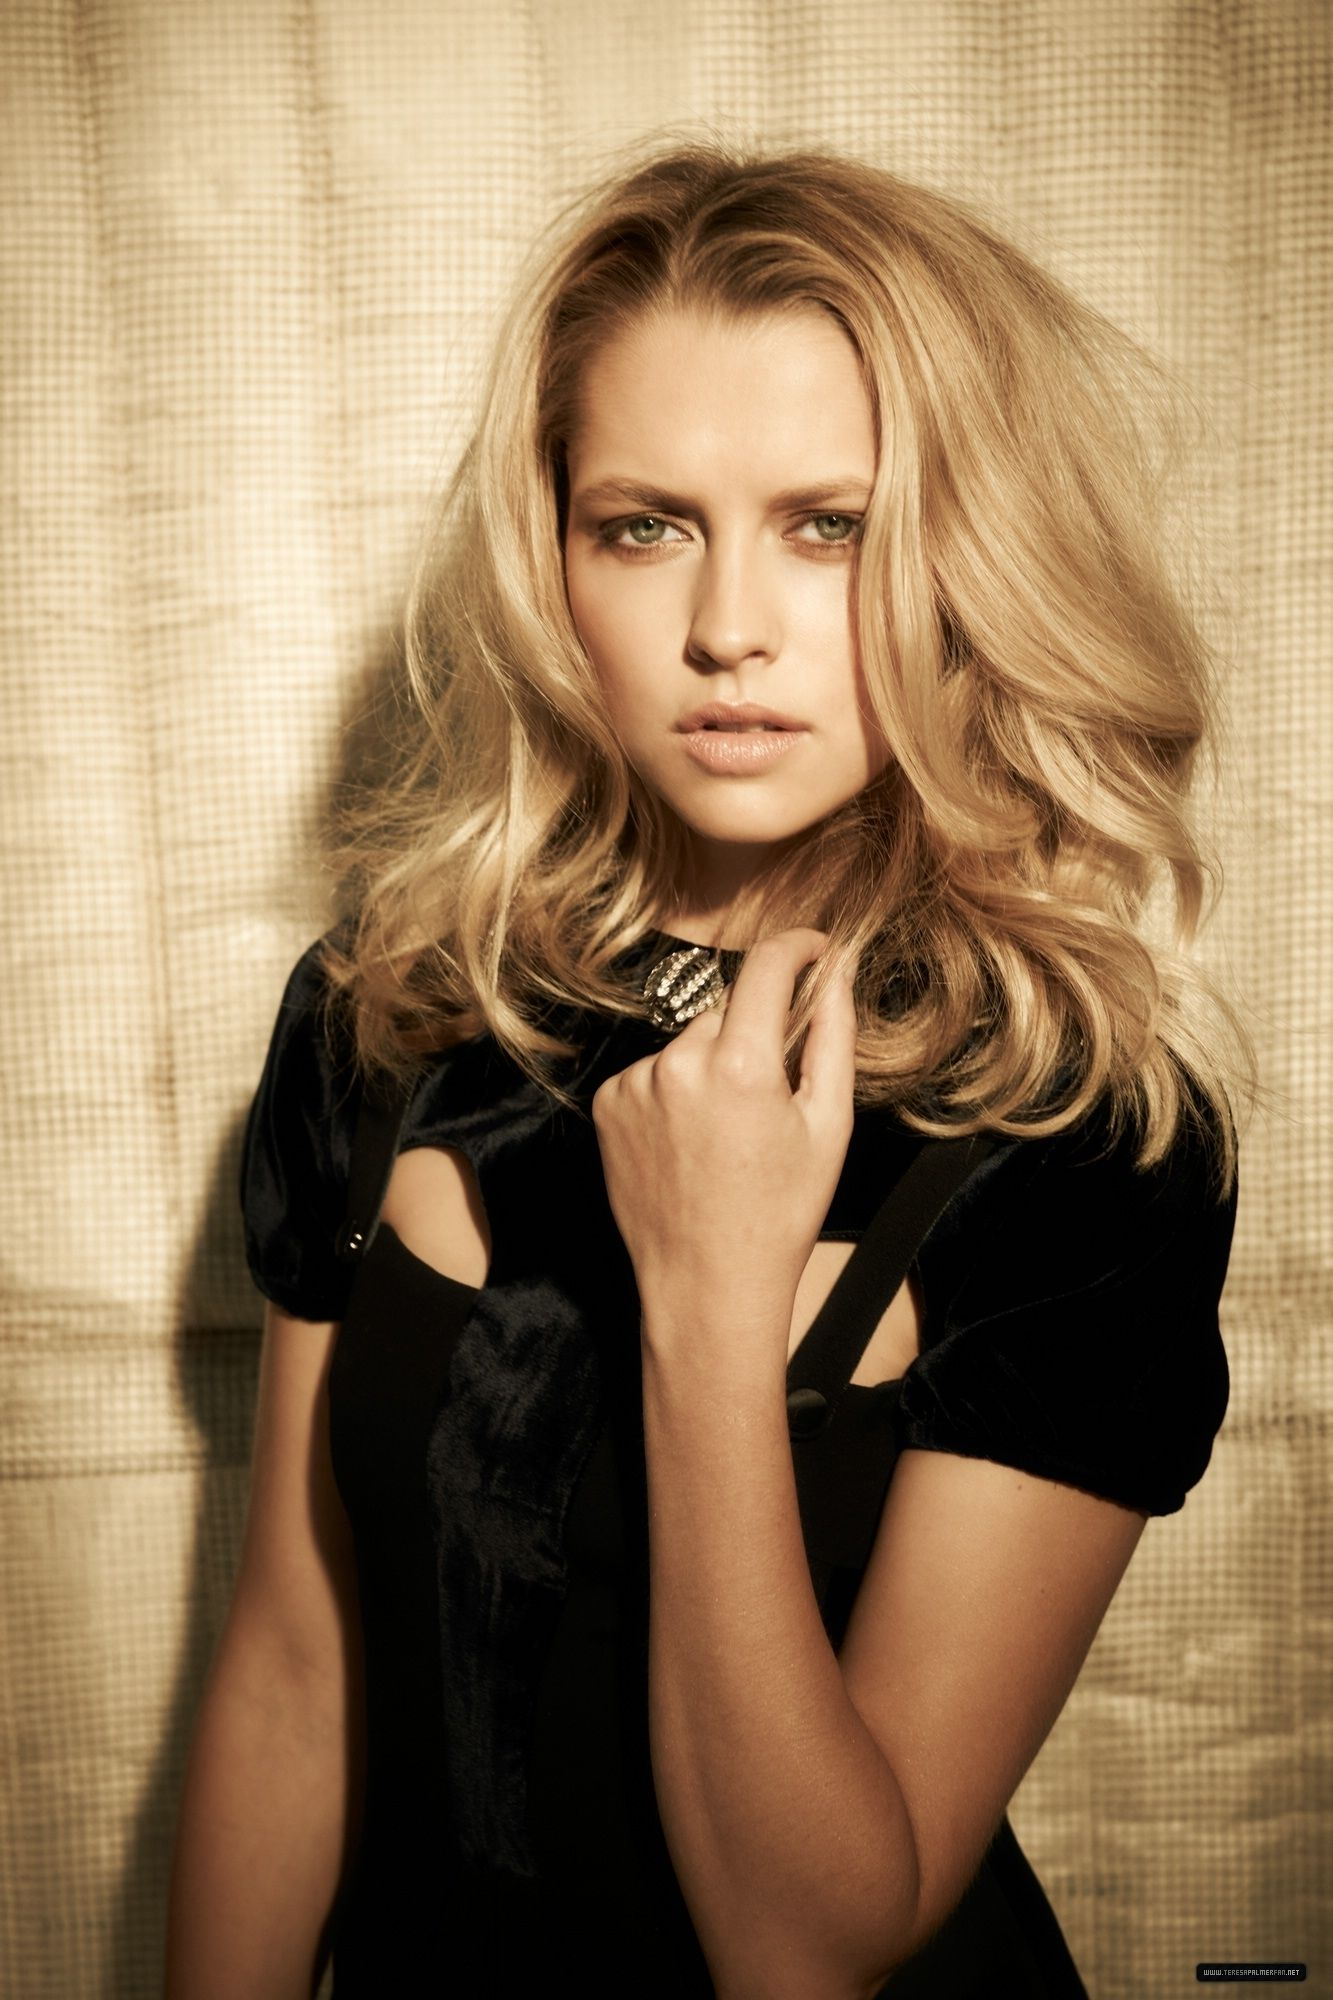 Celebrites Teresa Palmer nude (63 foto and video), Ass, Bikini, Feet, lingerie 2020